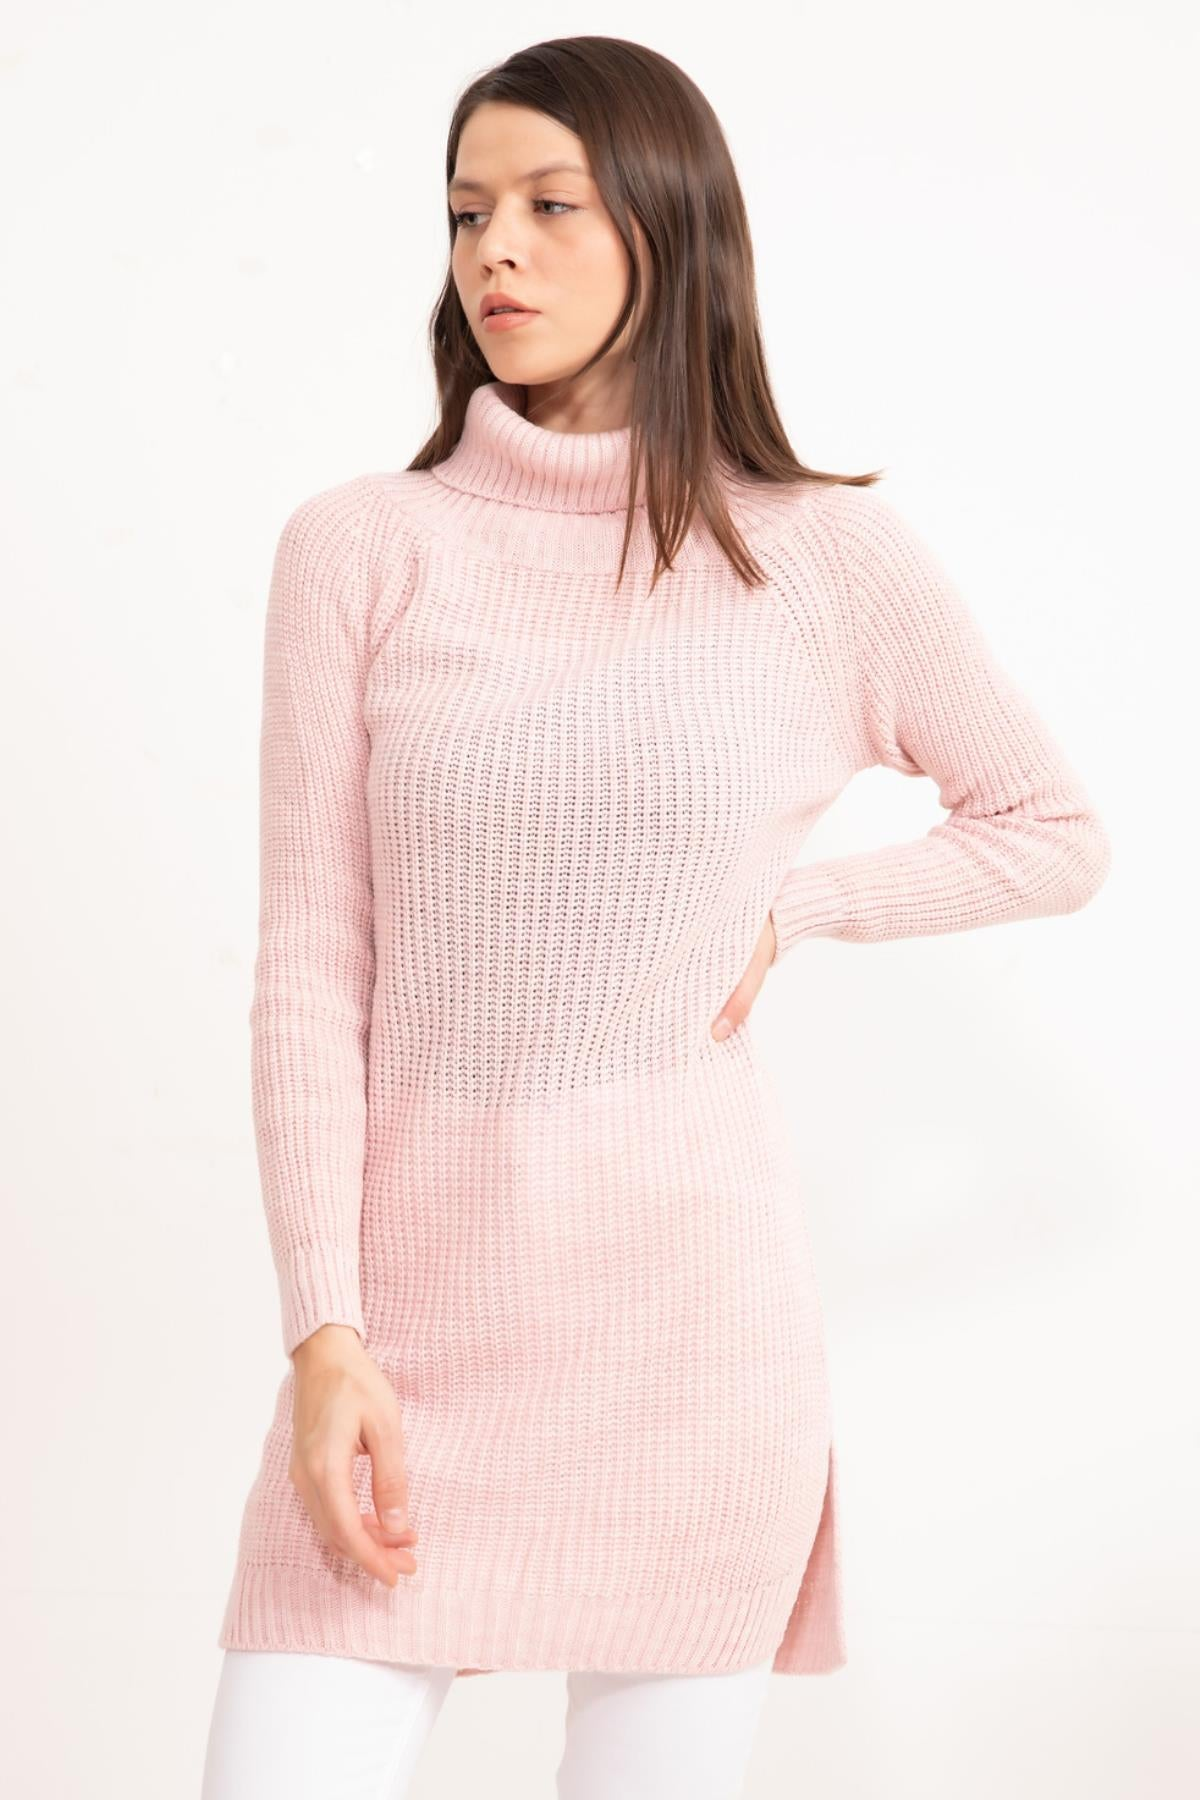 Rose powder Turtleneck Knitwear Tunic